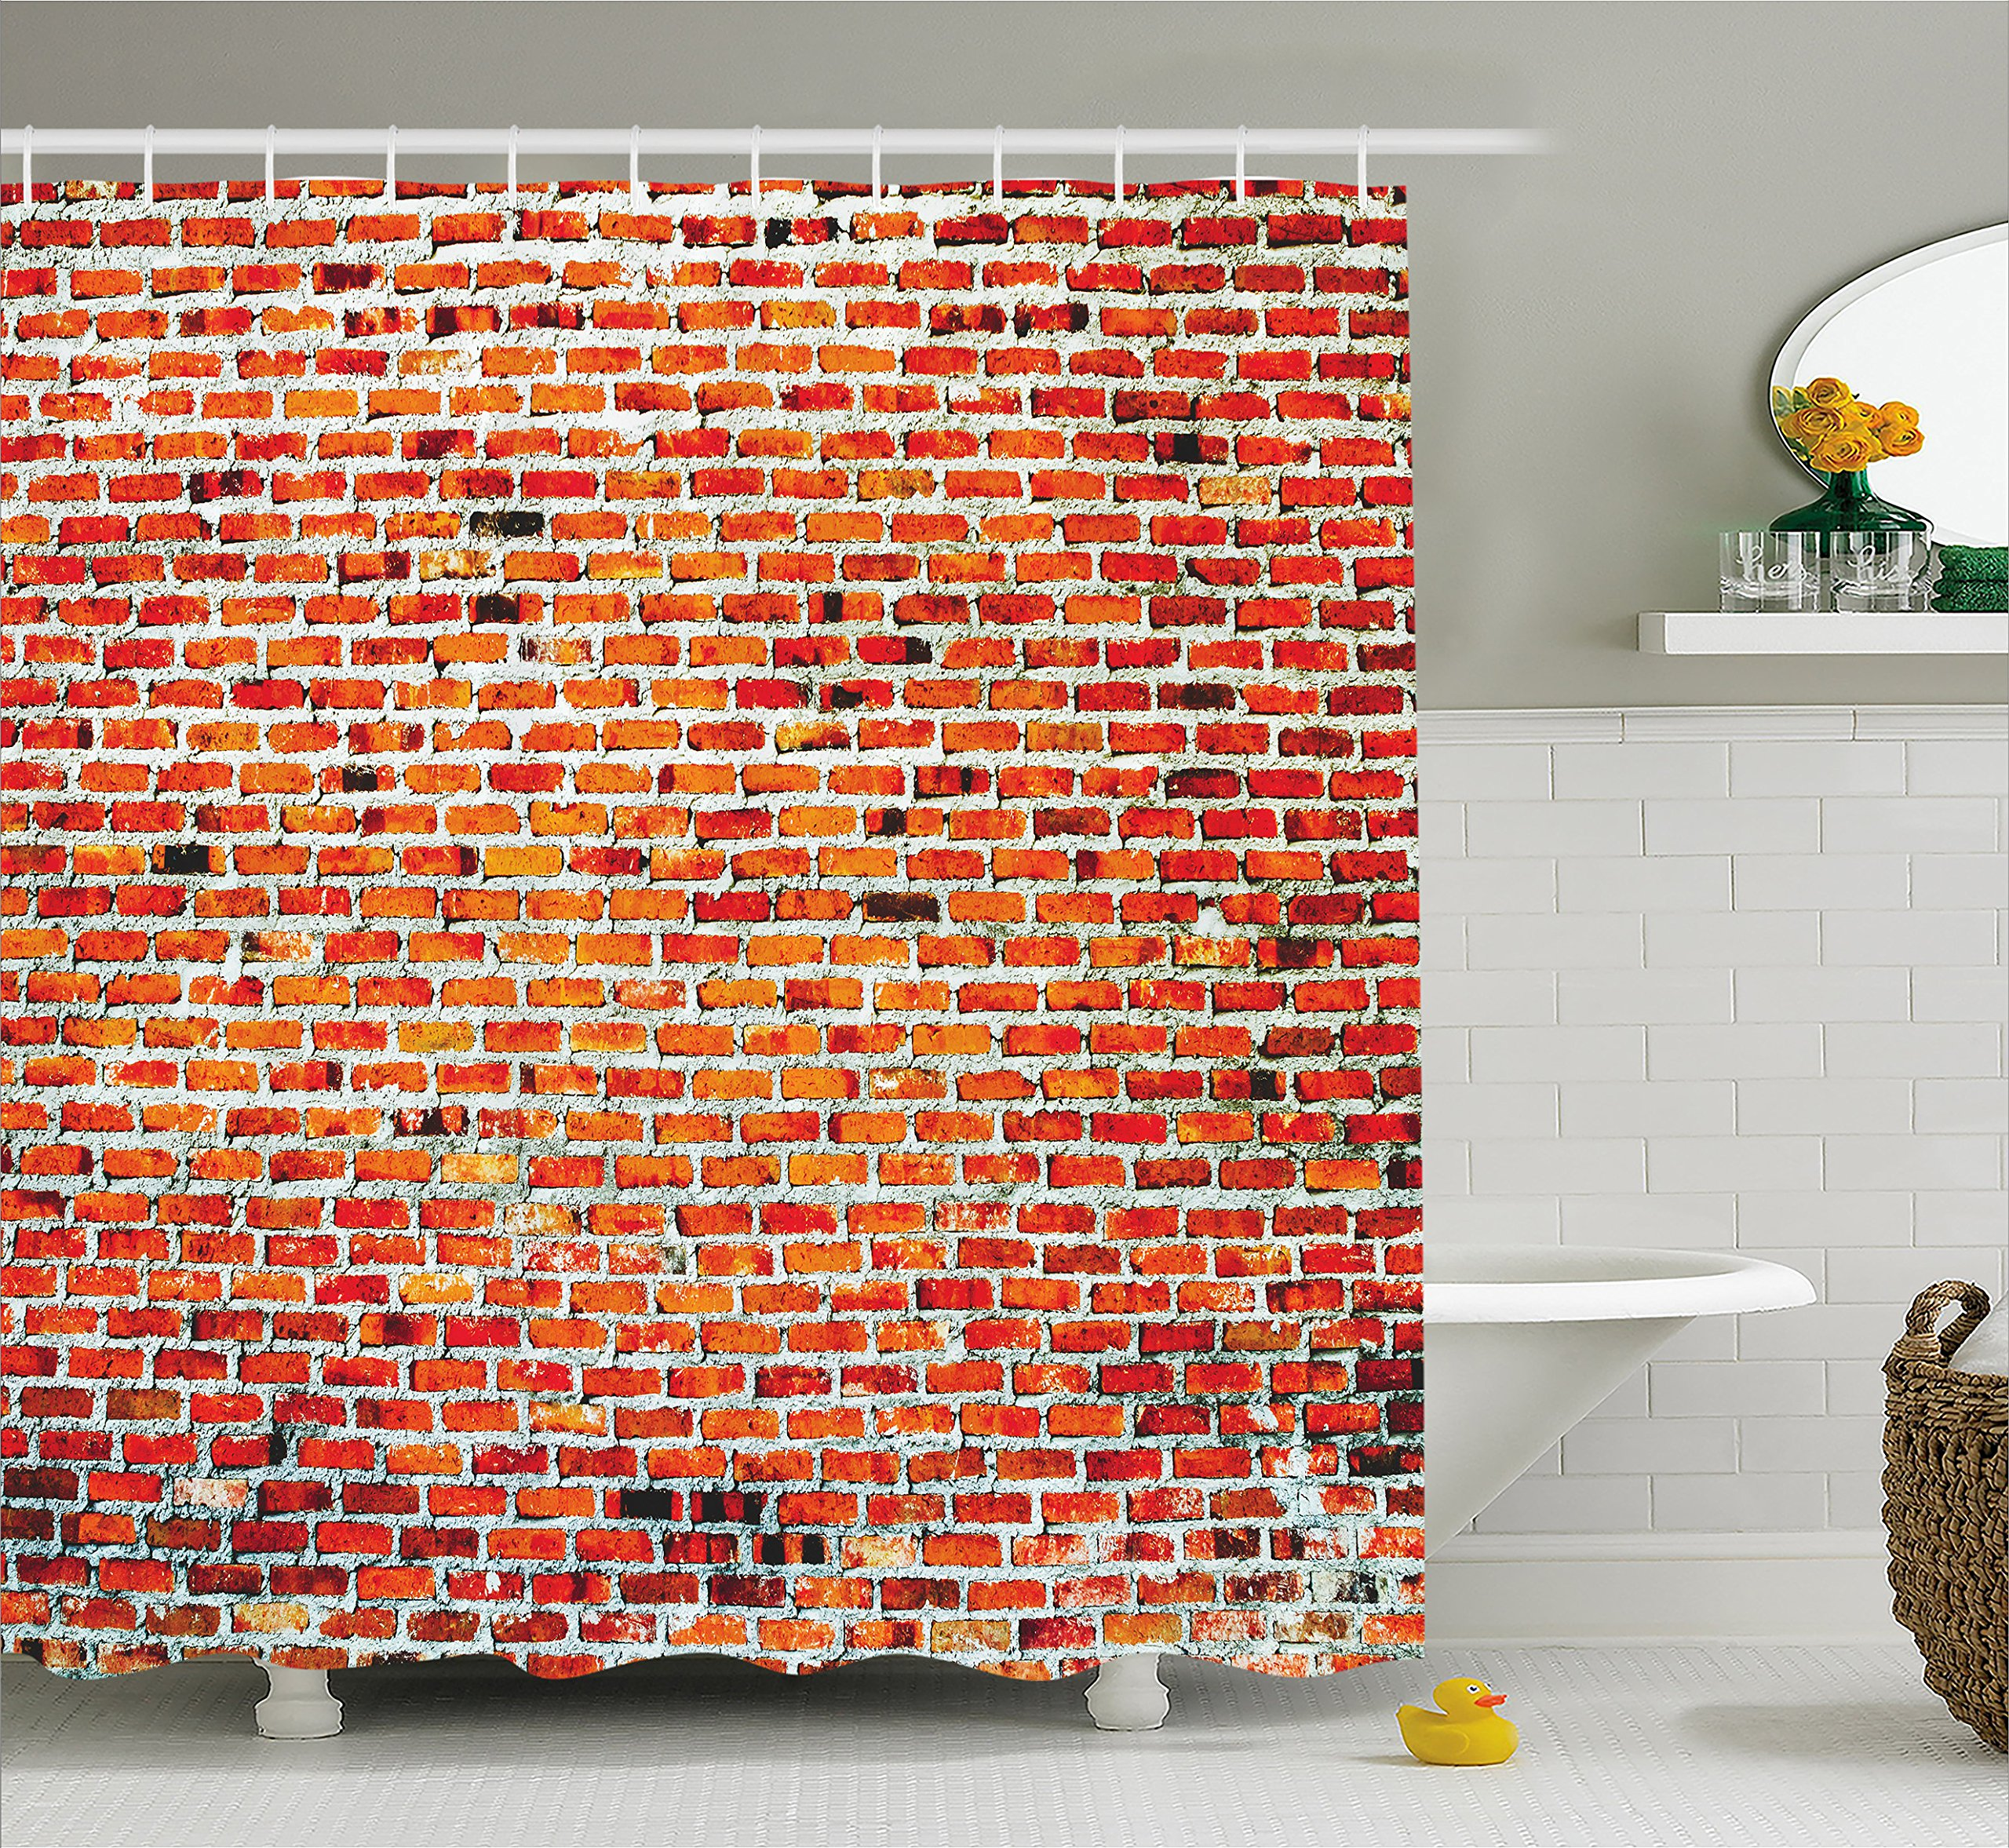 Rustic Home Decor Shower Curtain by Ambesonne, Brick Wall with Decorative Bricks Grunge Style Rampart Pattern, Fabric Bathroom Decor Set with Hooks, 84 Inches Extra Long, Tile Red Black White